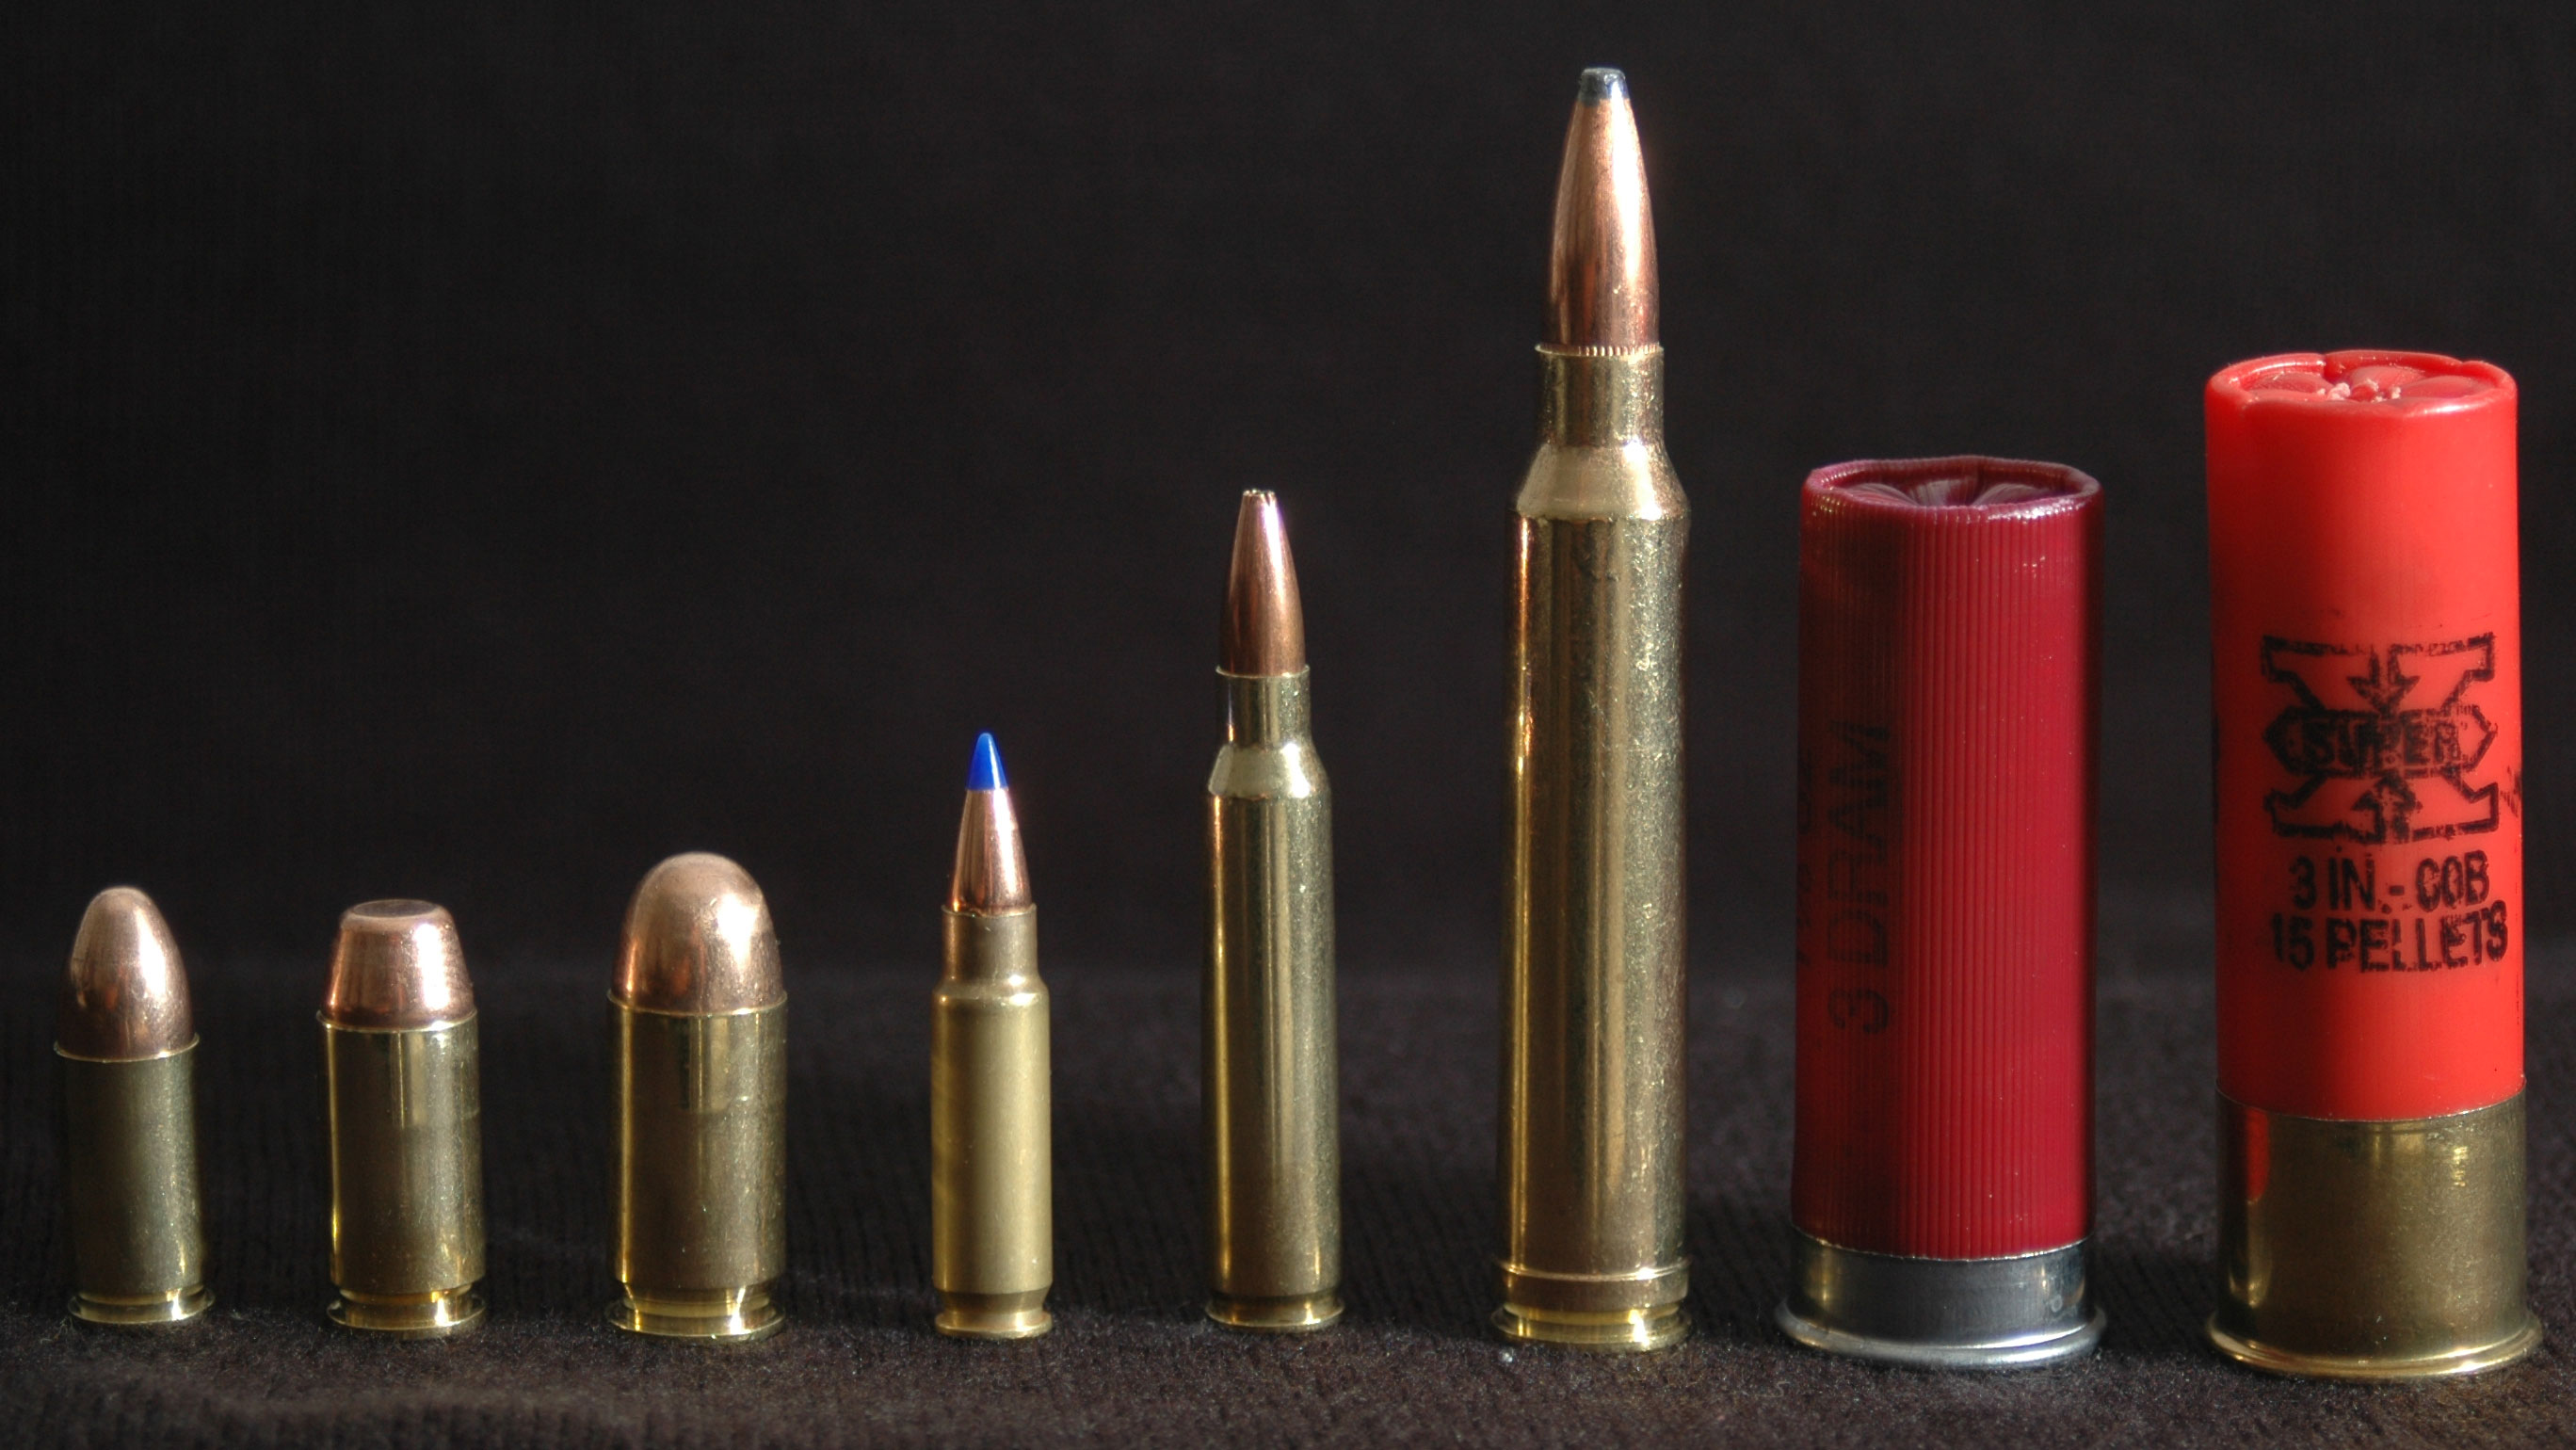 Many bullets Happy Holidays? 3 1/2 Years Of Ammo Sold In 72 Hours Says Top Maker